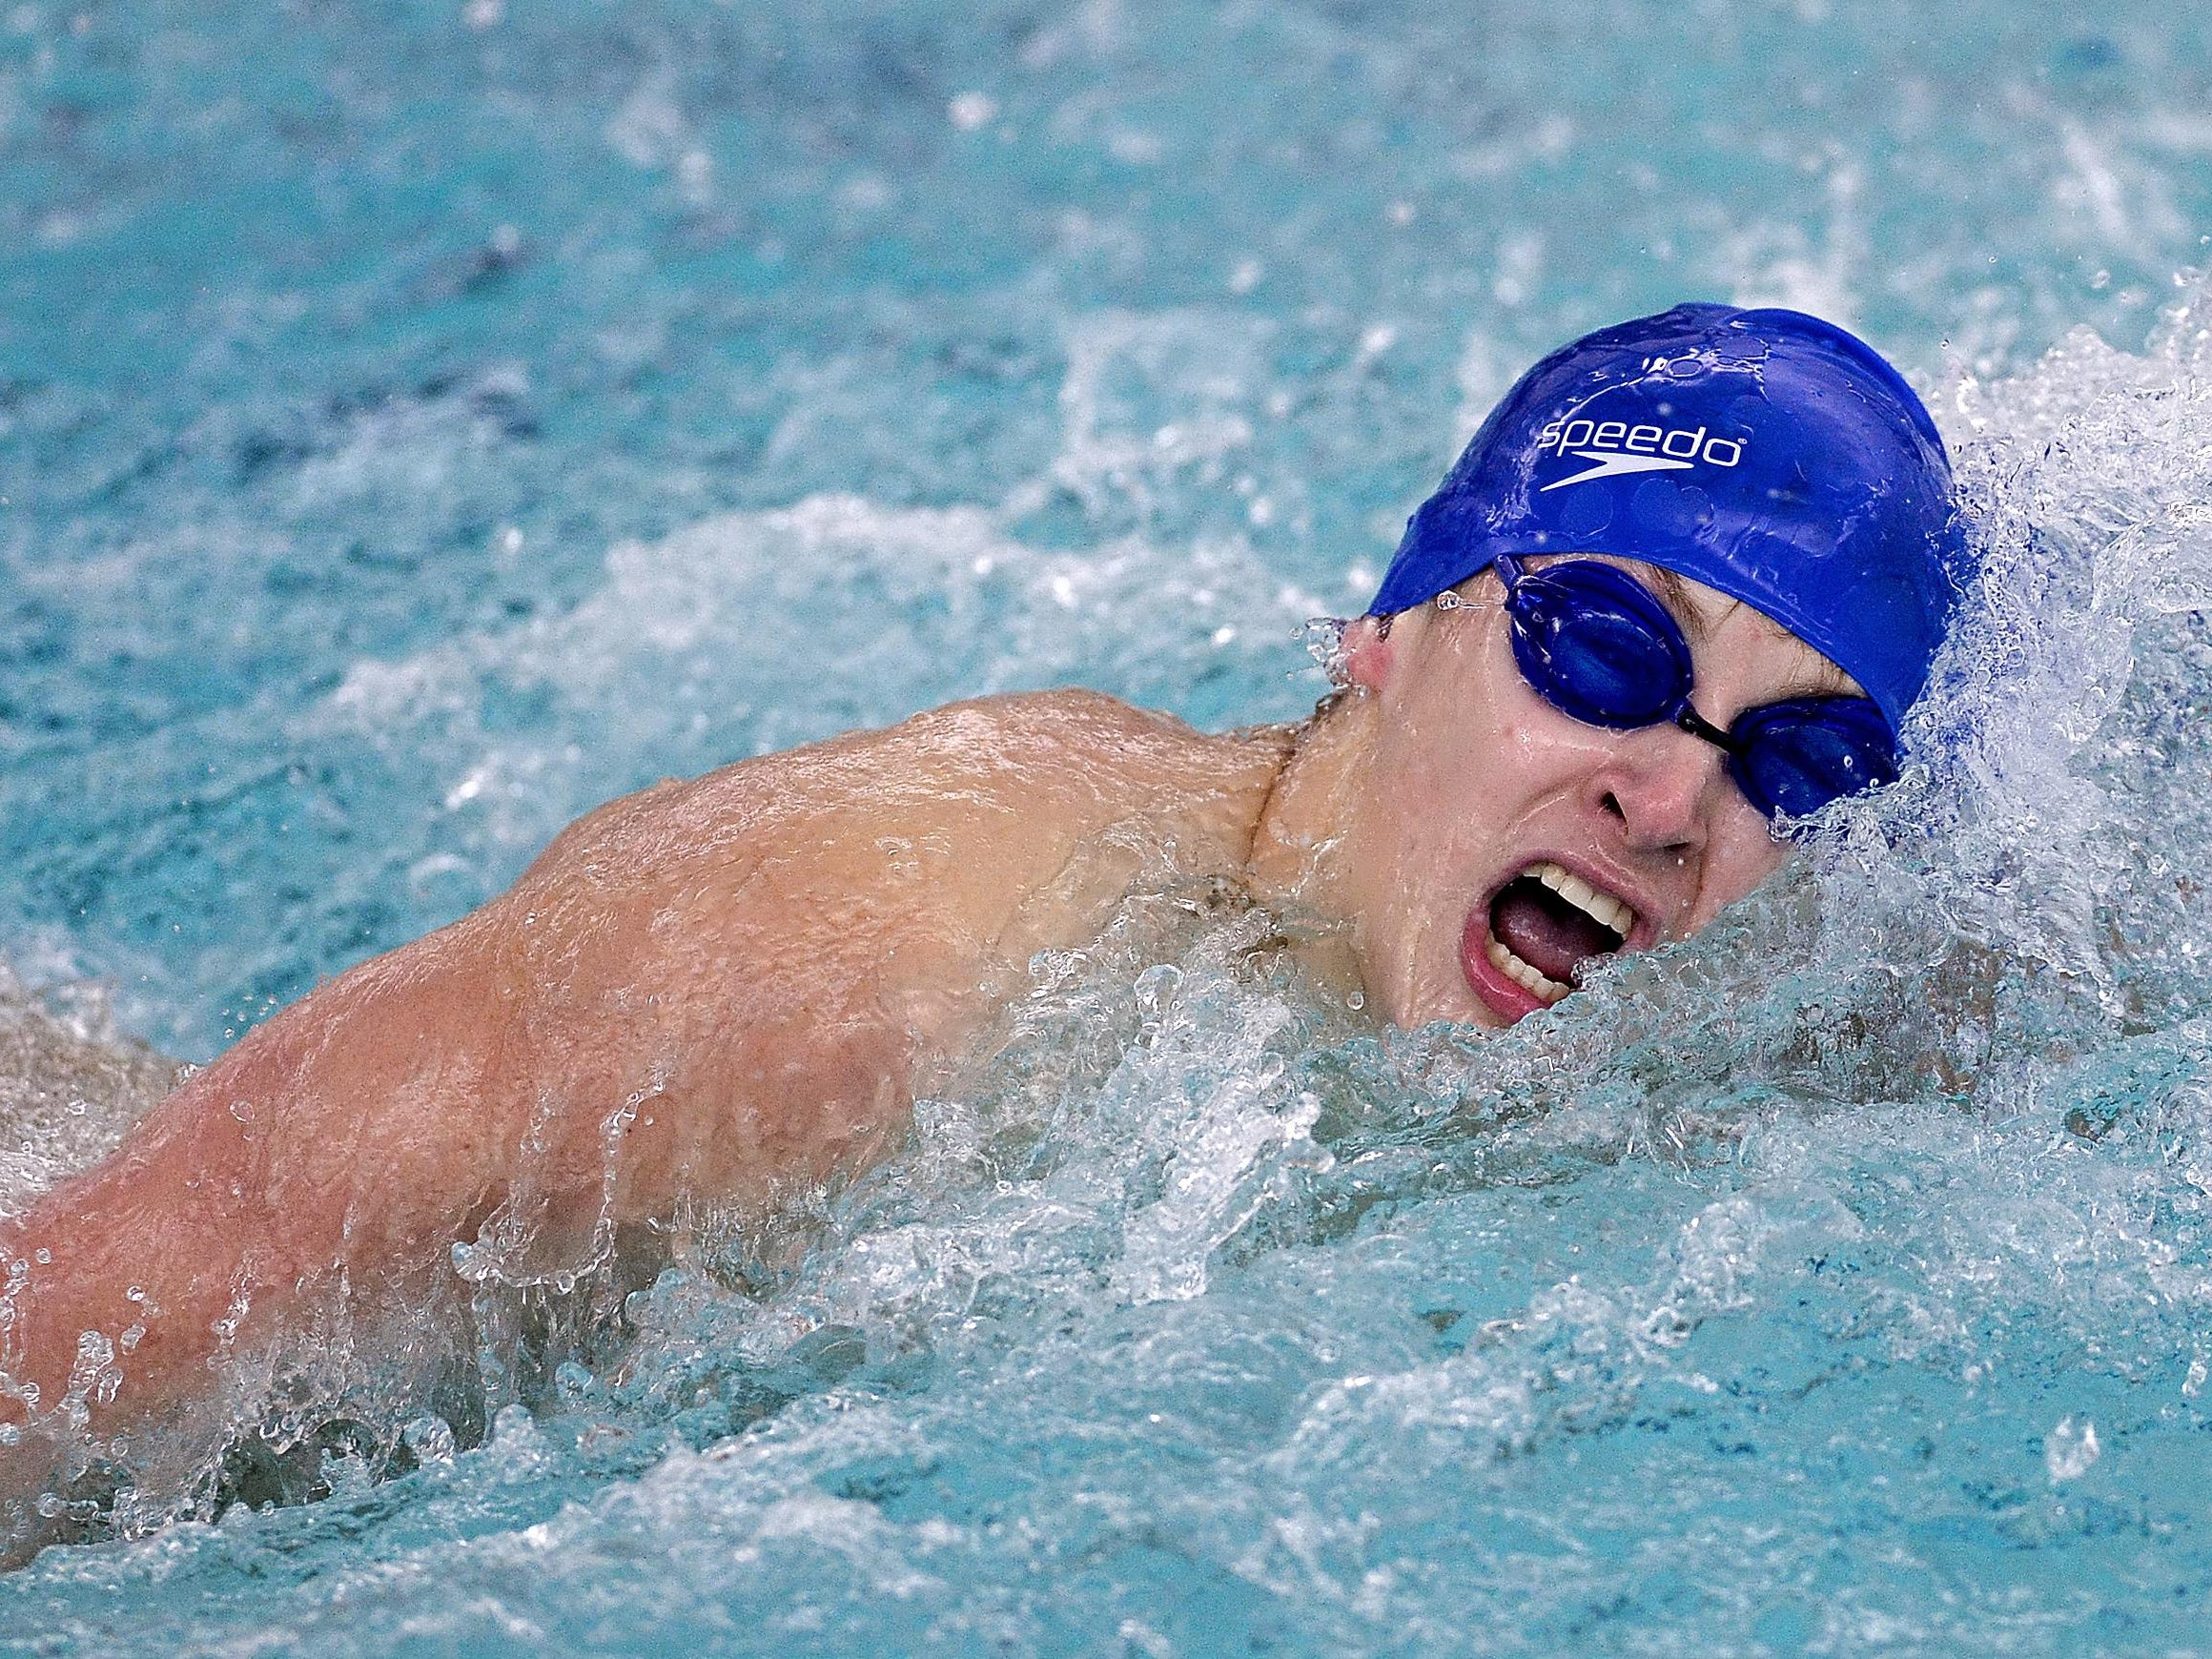 Brockport's Bruce Kane swims the 100 yard freestyle during a meet at Brockport High School on Thursday, Jan. 8, 2016.